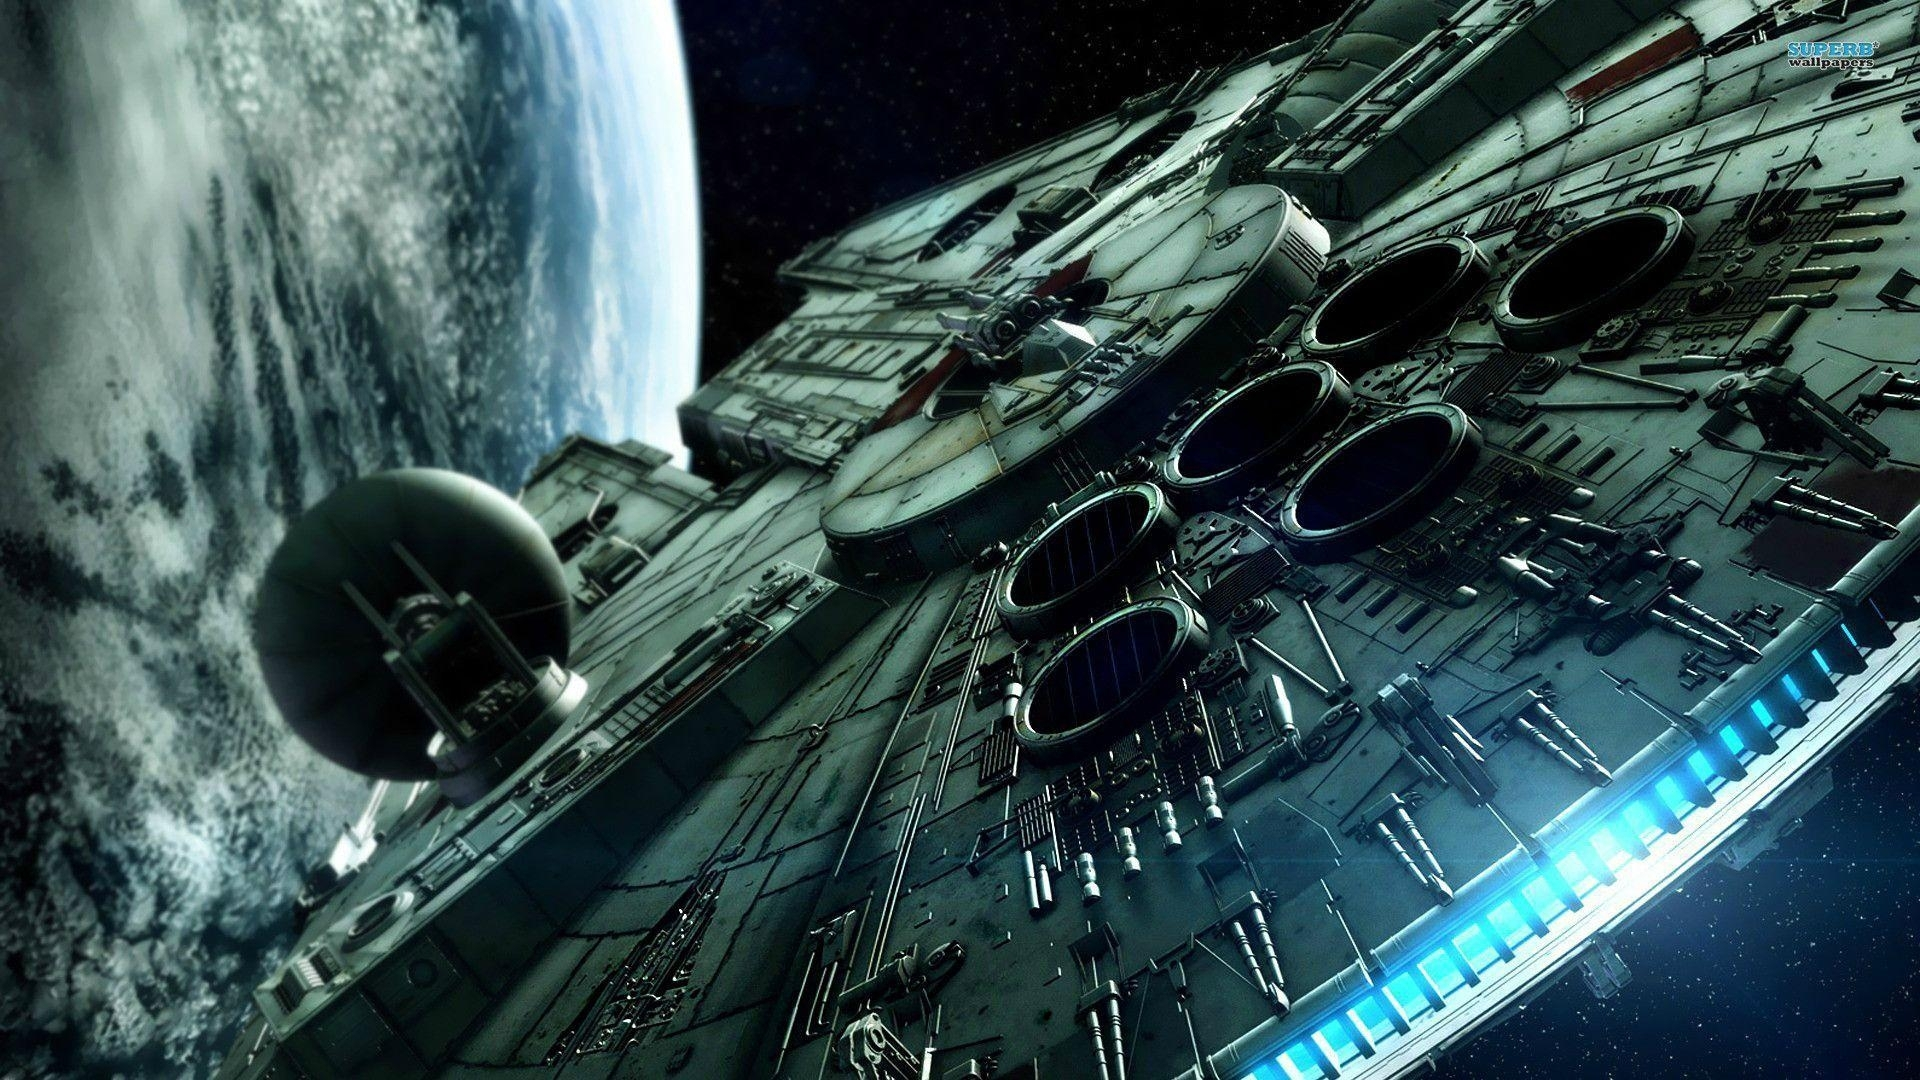 millenium falcon wallpapers - wallpaper cave